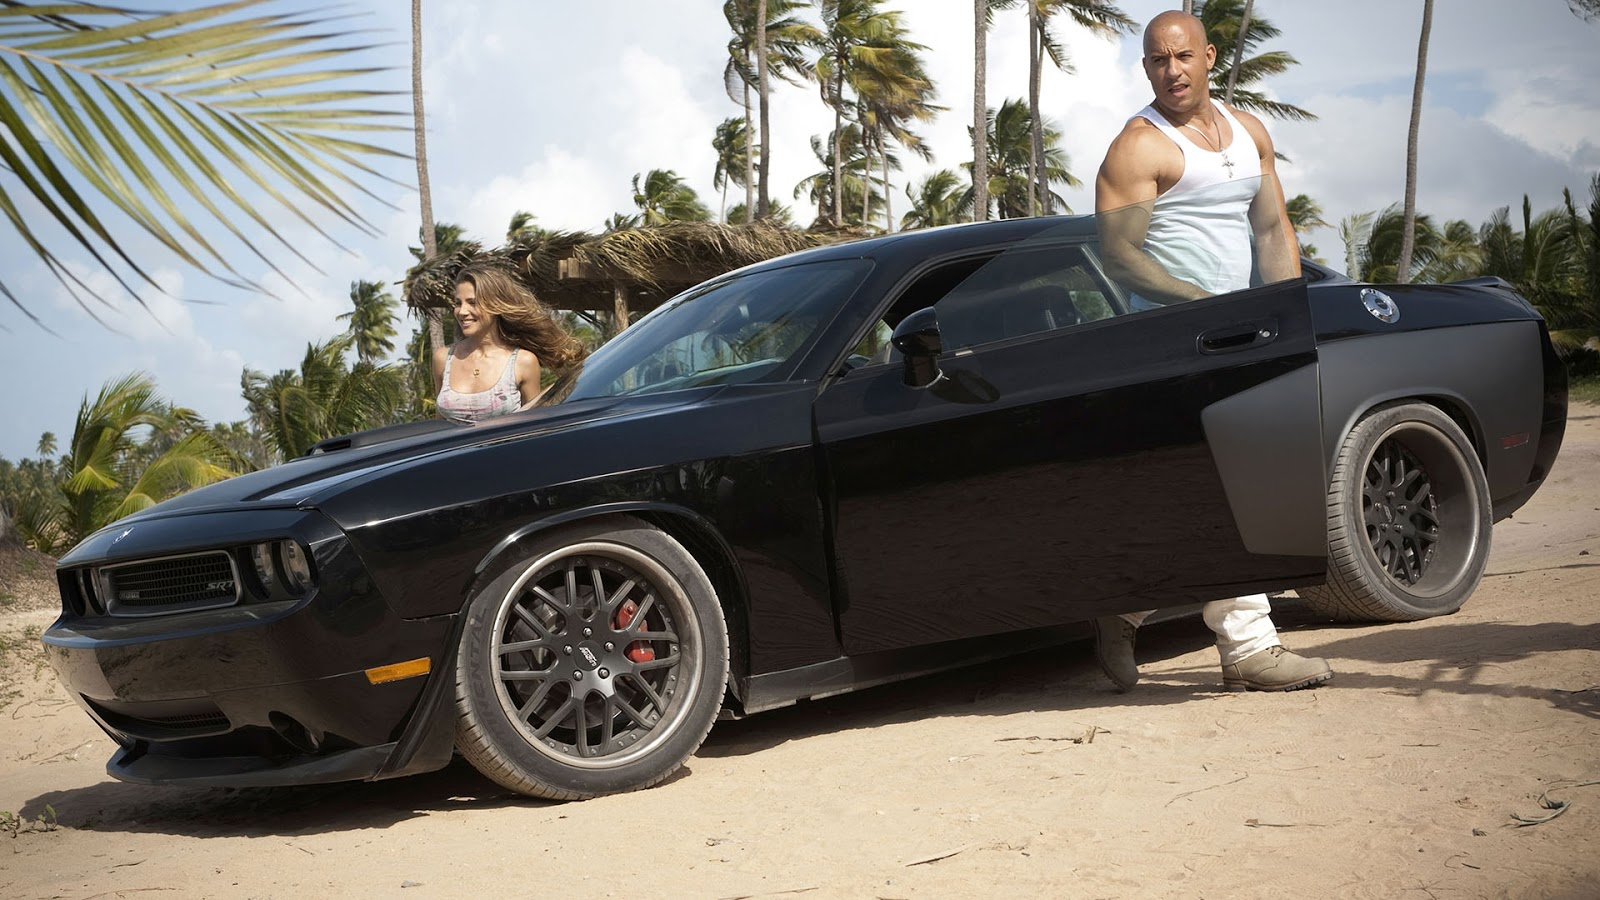 Universe Auto Sales >> 1970 Dodge Charger car used in Fast and Furious 7 | Auto Universe | Tips Auto Car